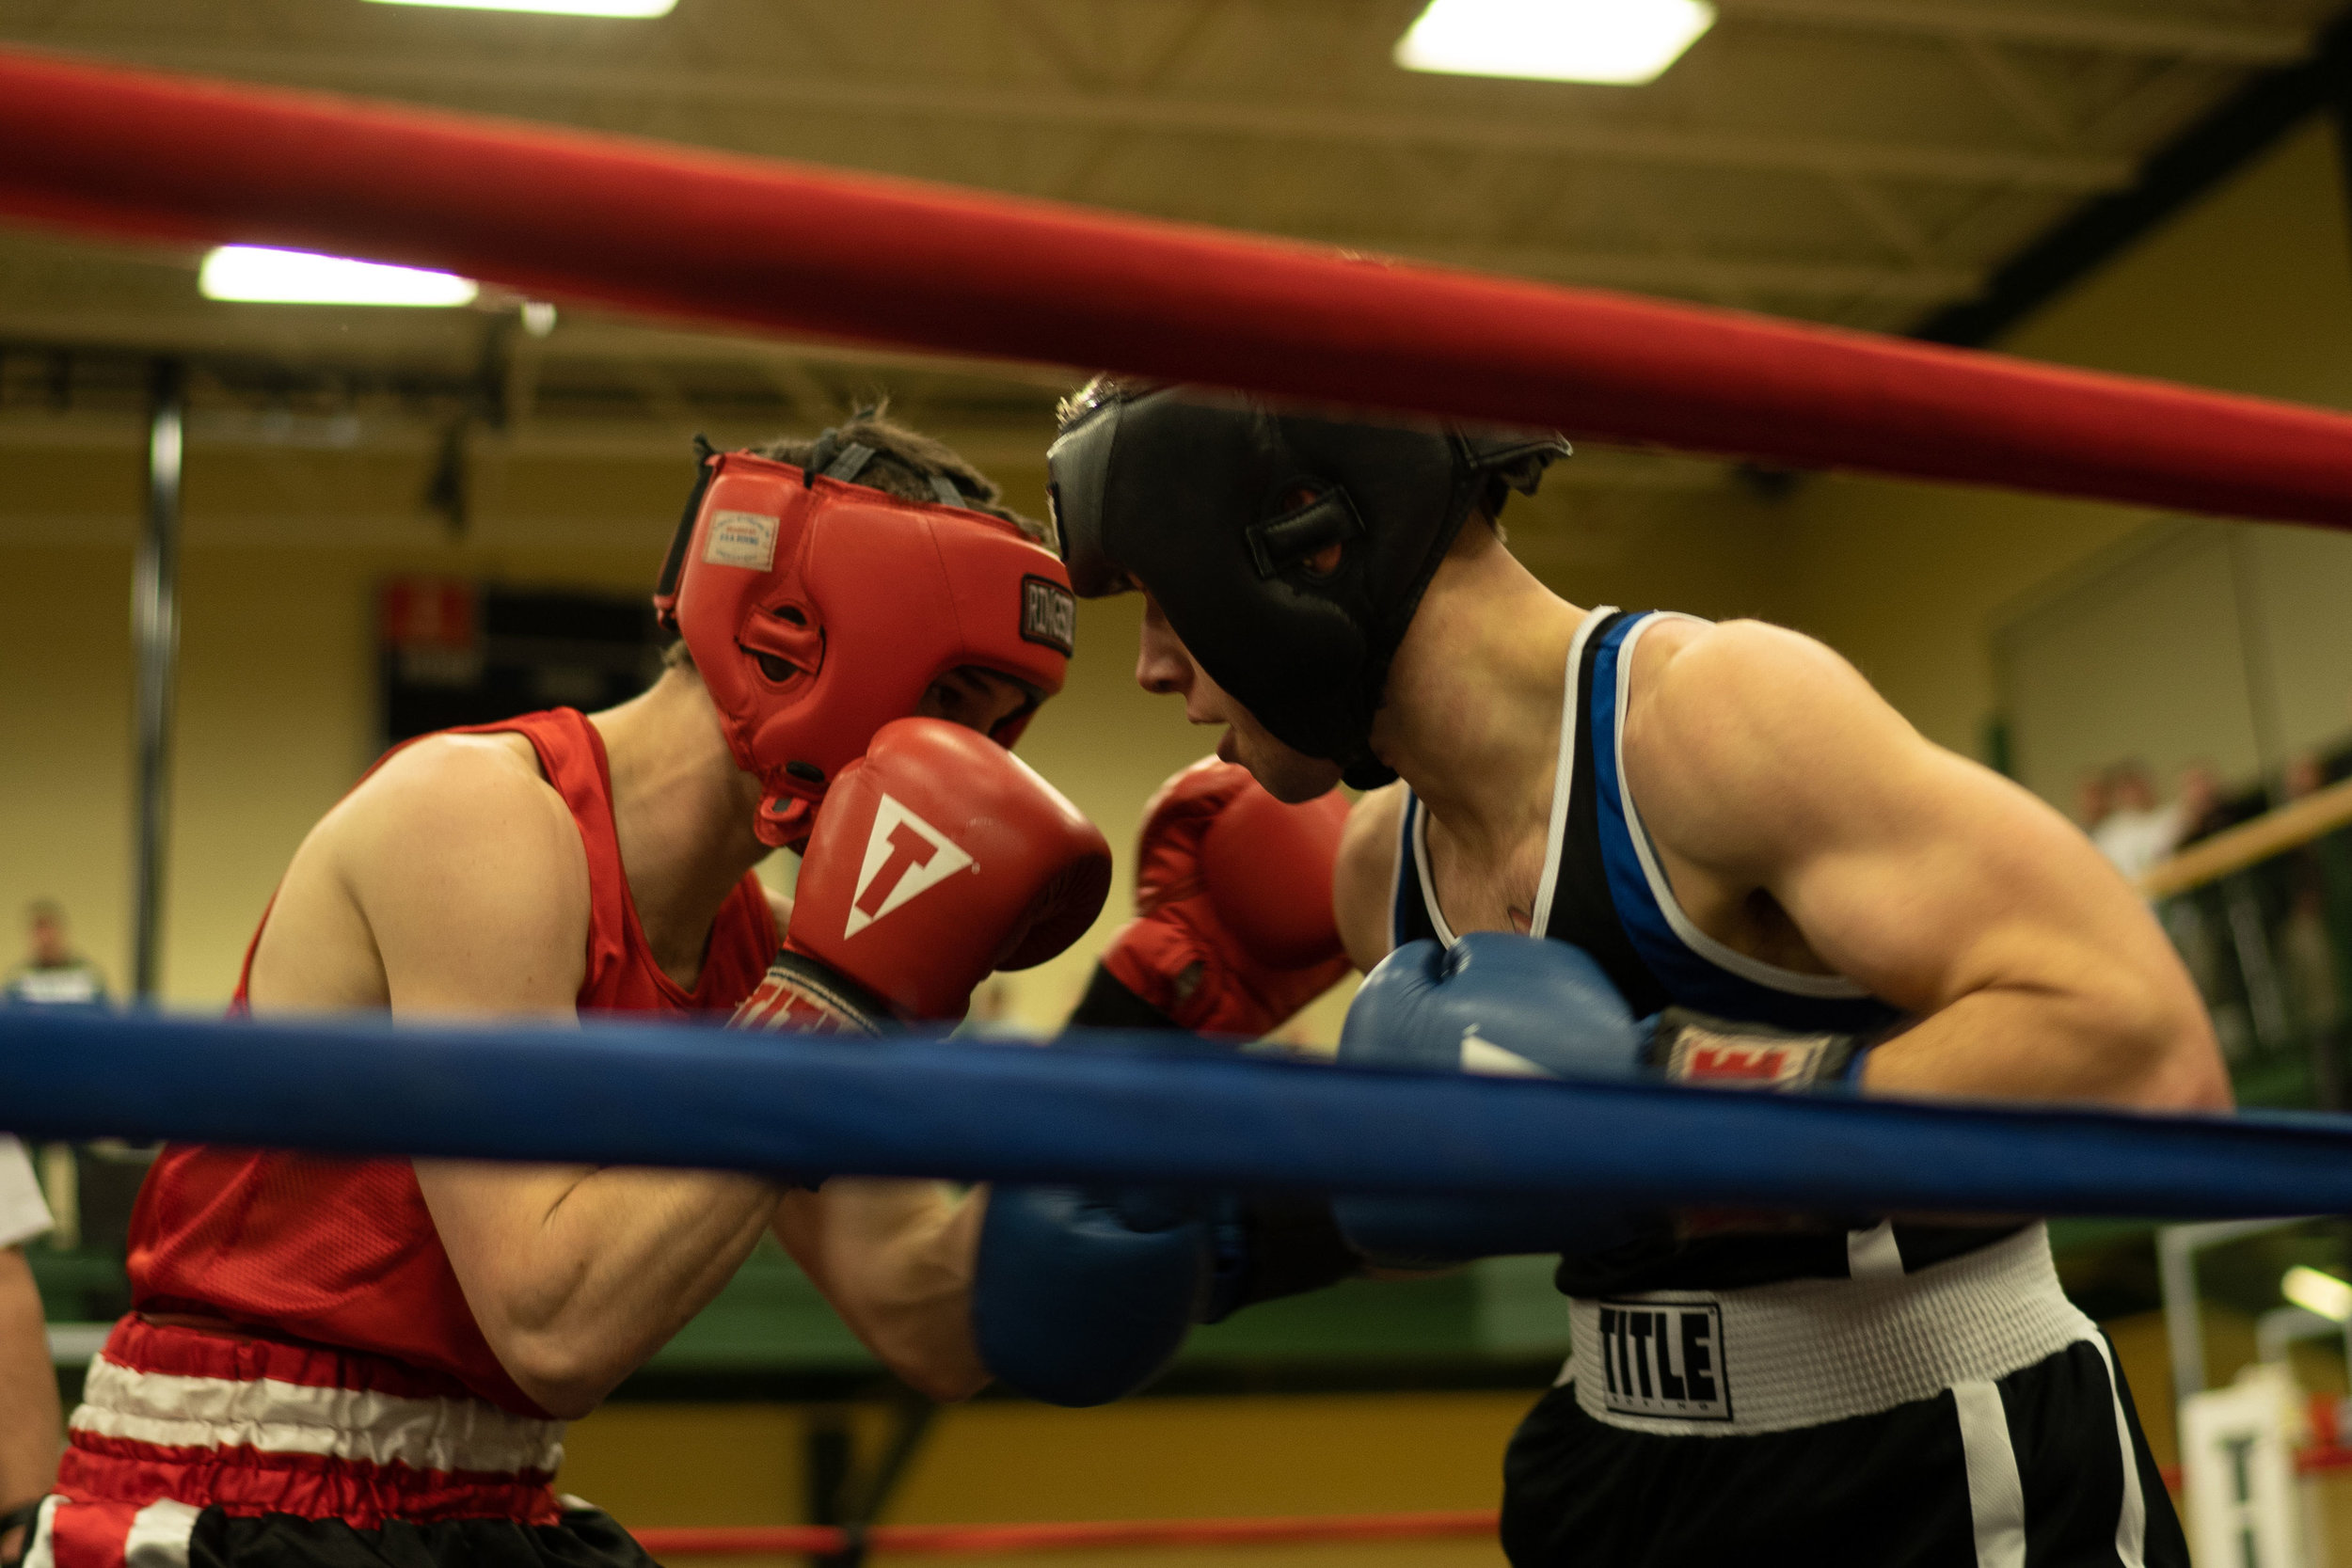 Portland Boxing Club's Alec Dacar, left, made his amateur debut at the Second Annual PAL St. Paddy's Day Rumble. Photo courtesy Shawn Pacheco  shawnpacheco.com .